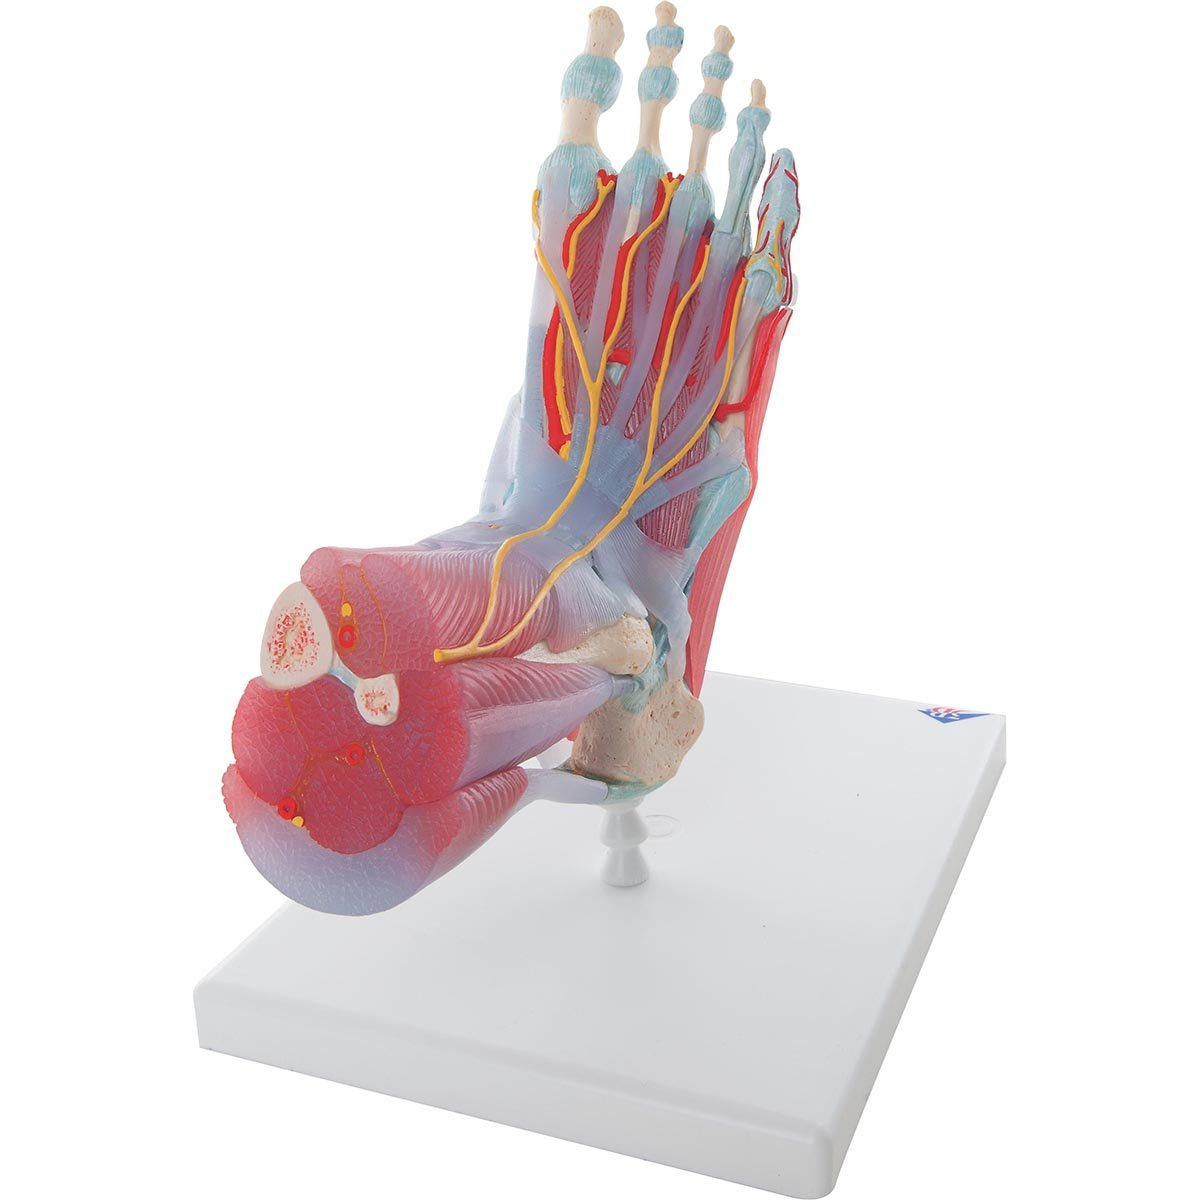 3b Scientific Human Anatomy Foot Skeleton Model With Ligaments And